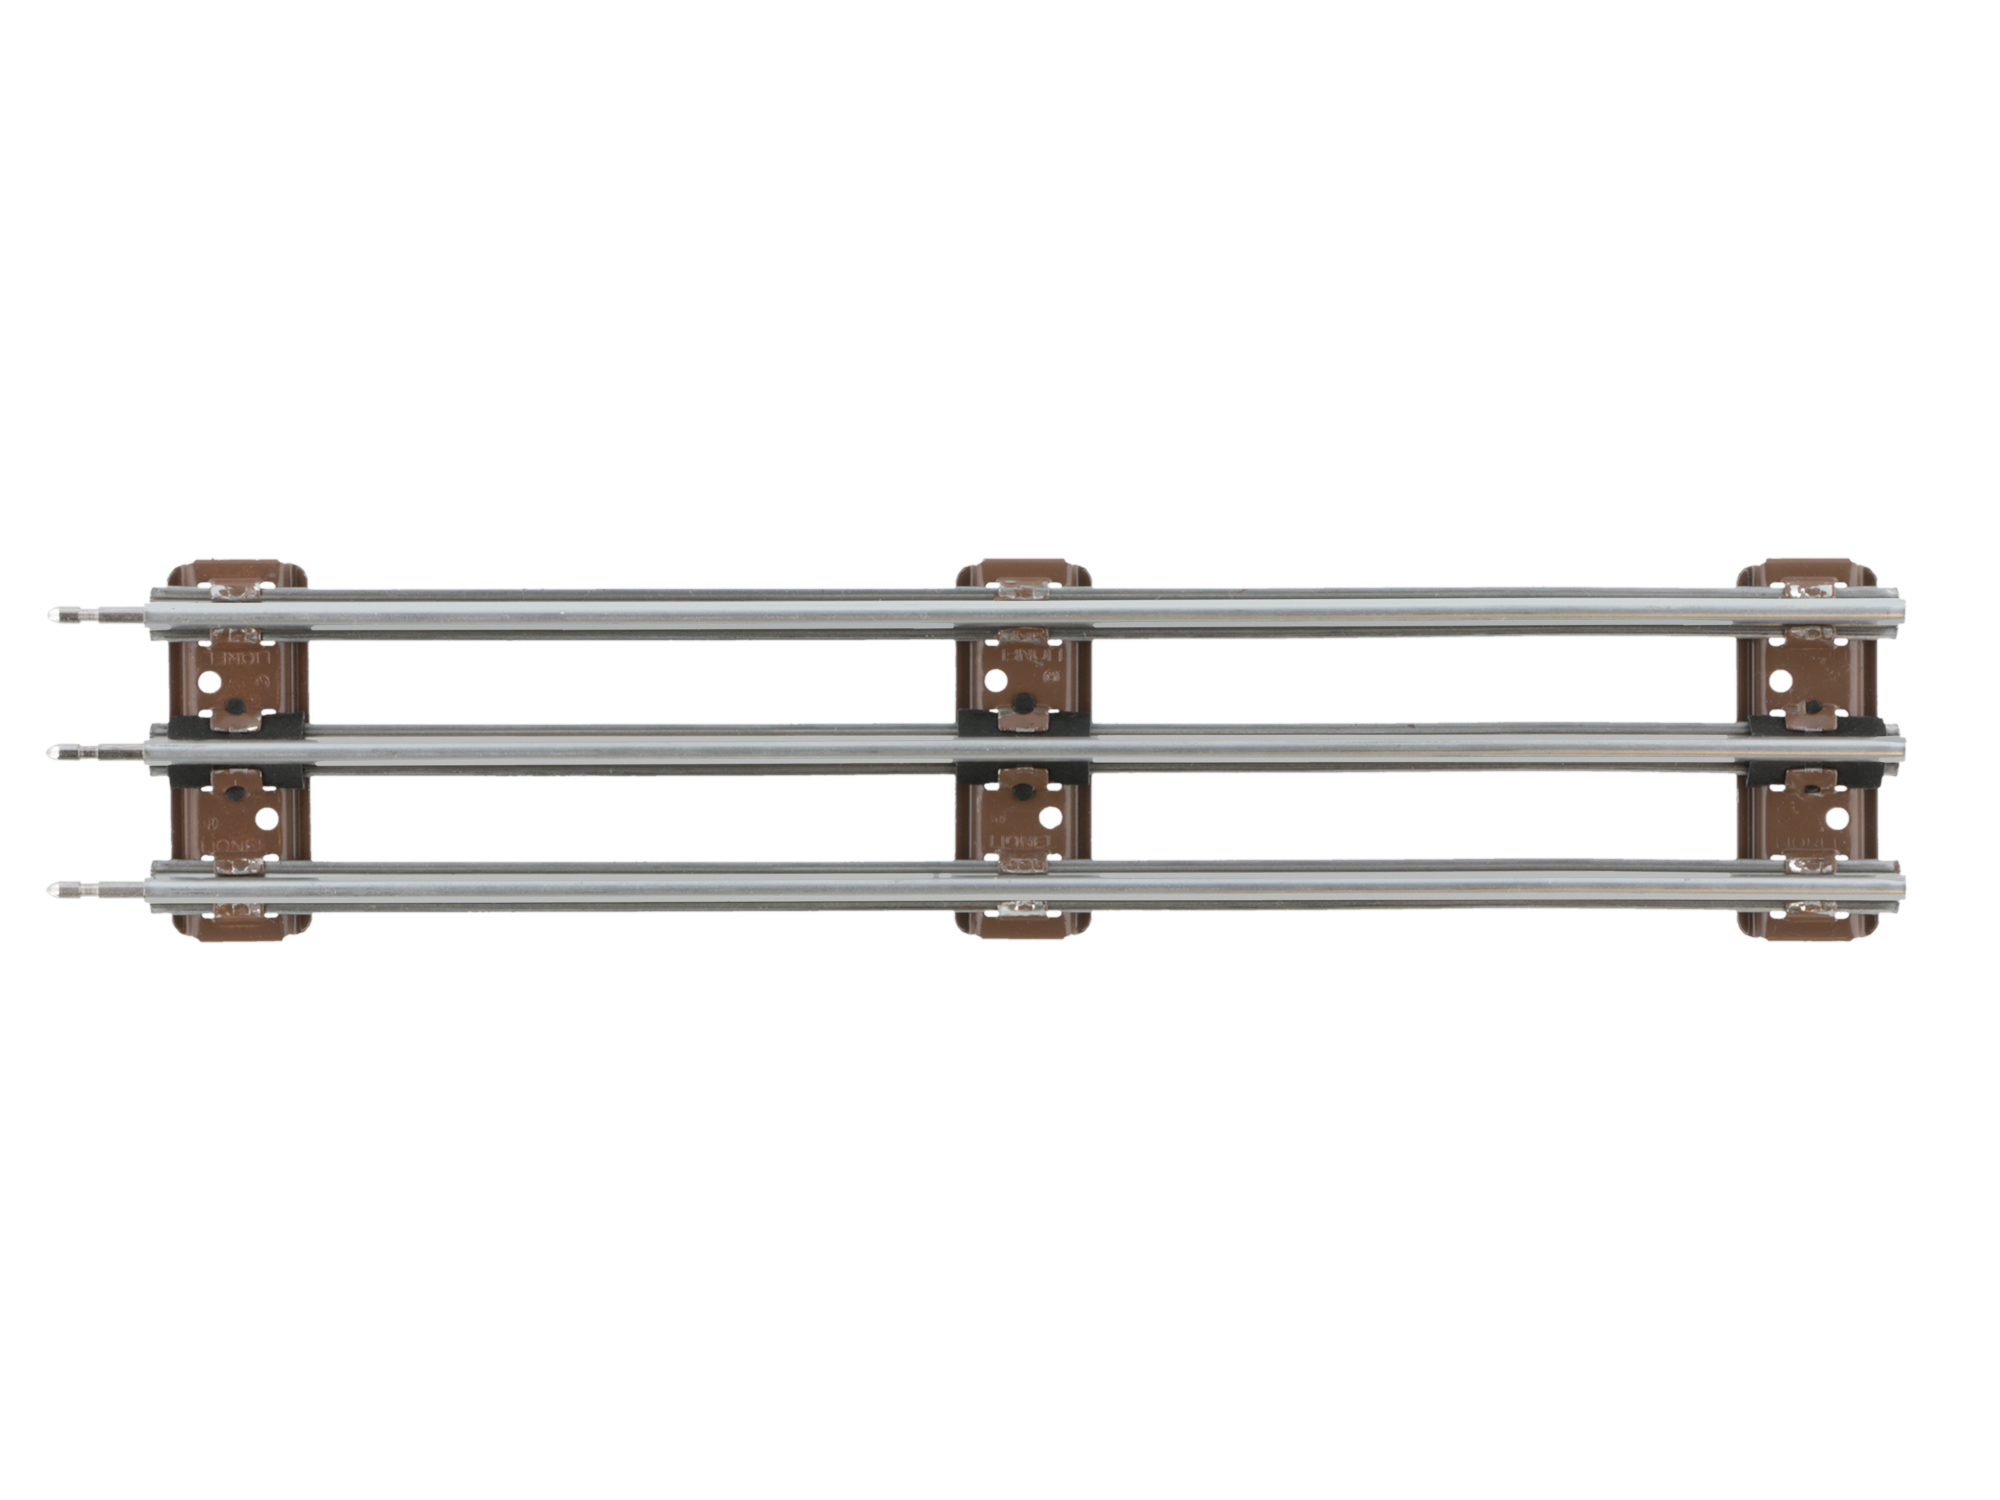 6-65038 STRAIGHT TRACK SECTION (0-27 GAUGE)